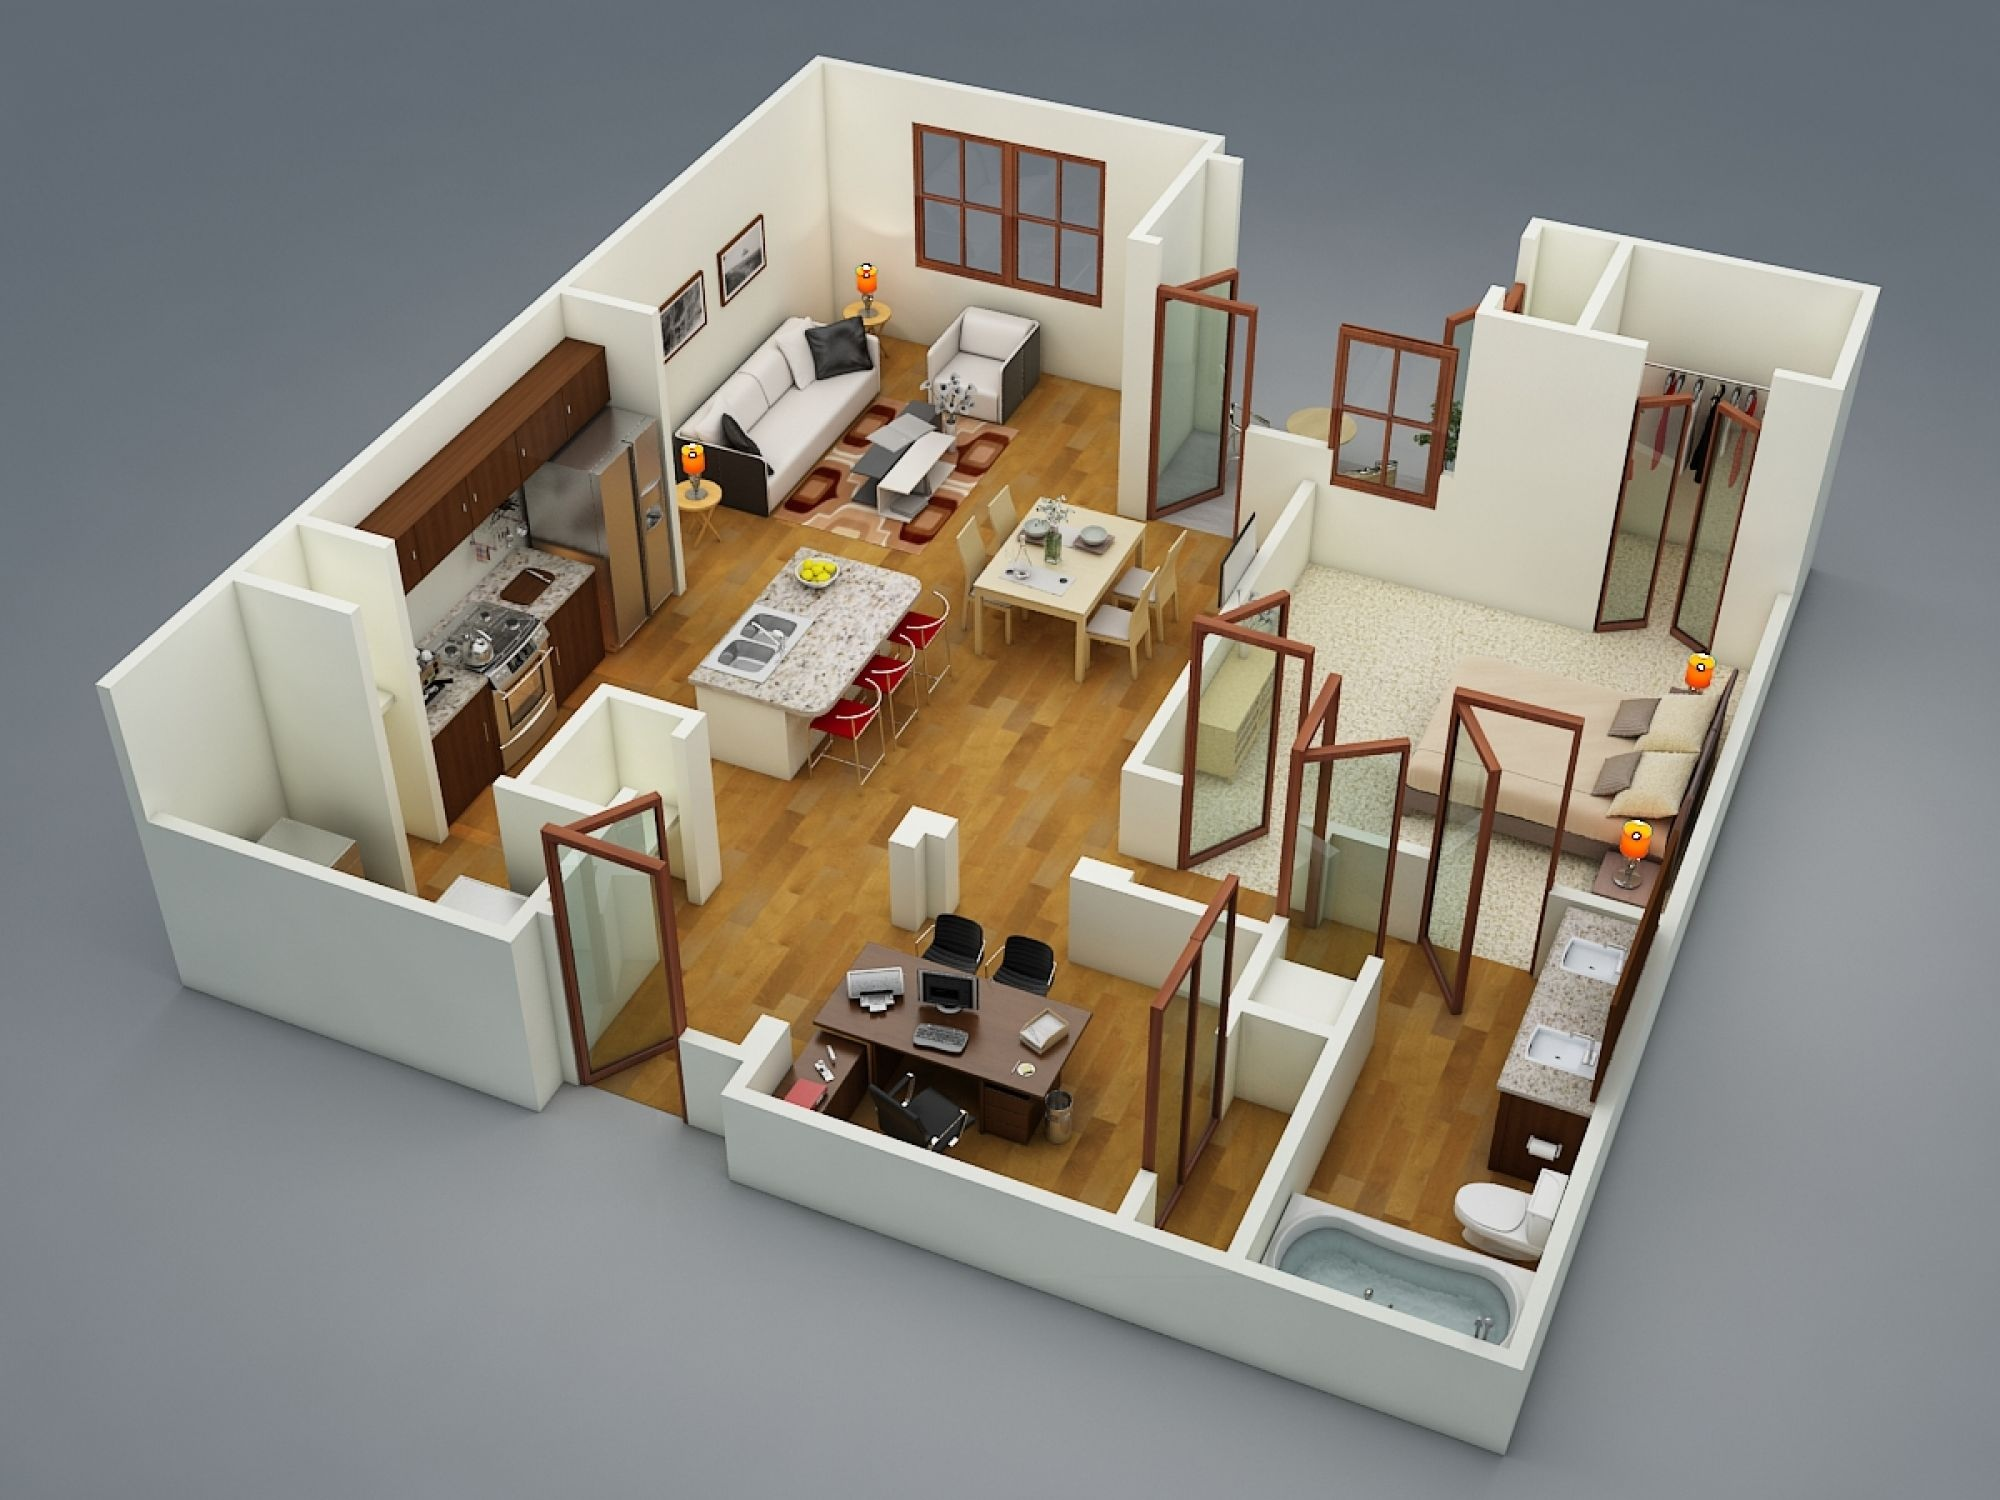 1 bedroom apartment house plans - One room apartment design plan ...